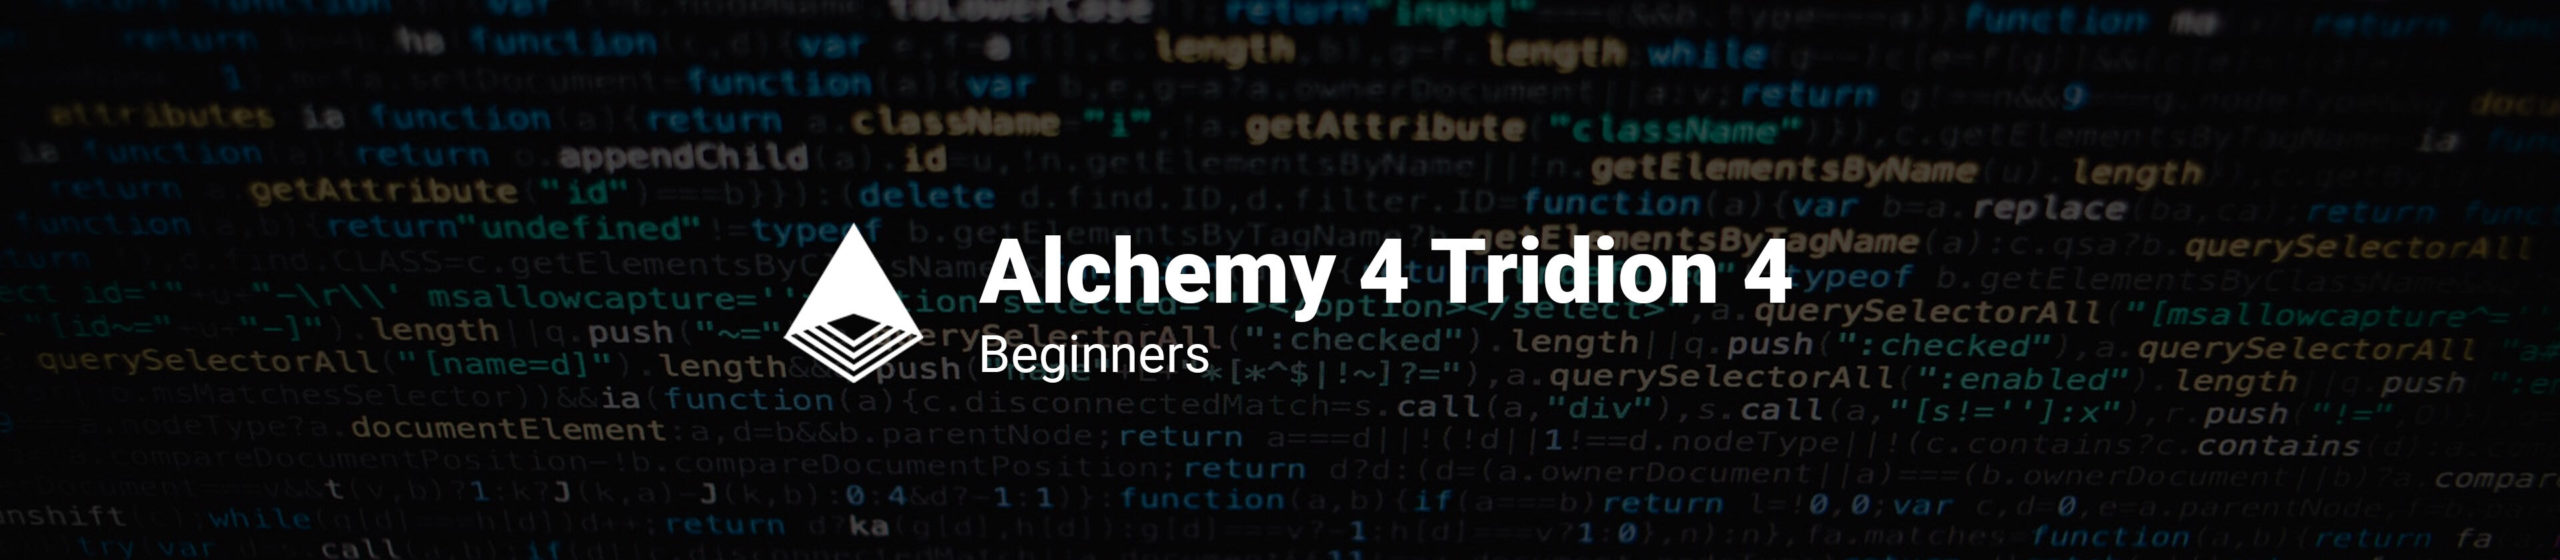 https://www.contentbloom.com/wp-content/uploads/2015/09/alchemy-4-tridion-4-begginers-scaled.jpg